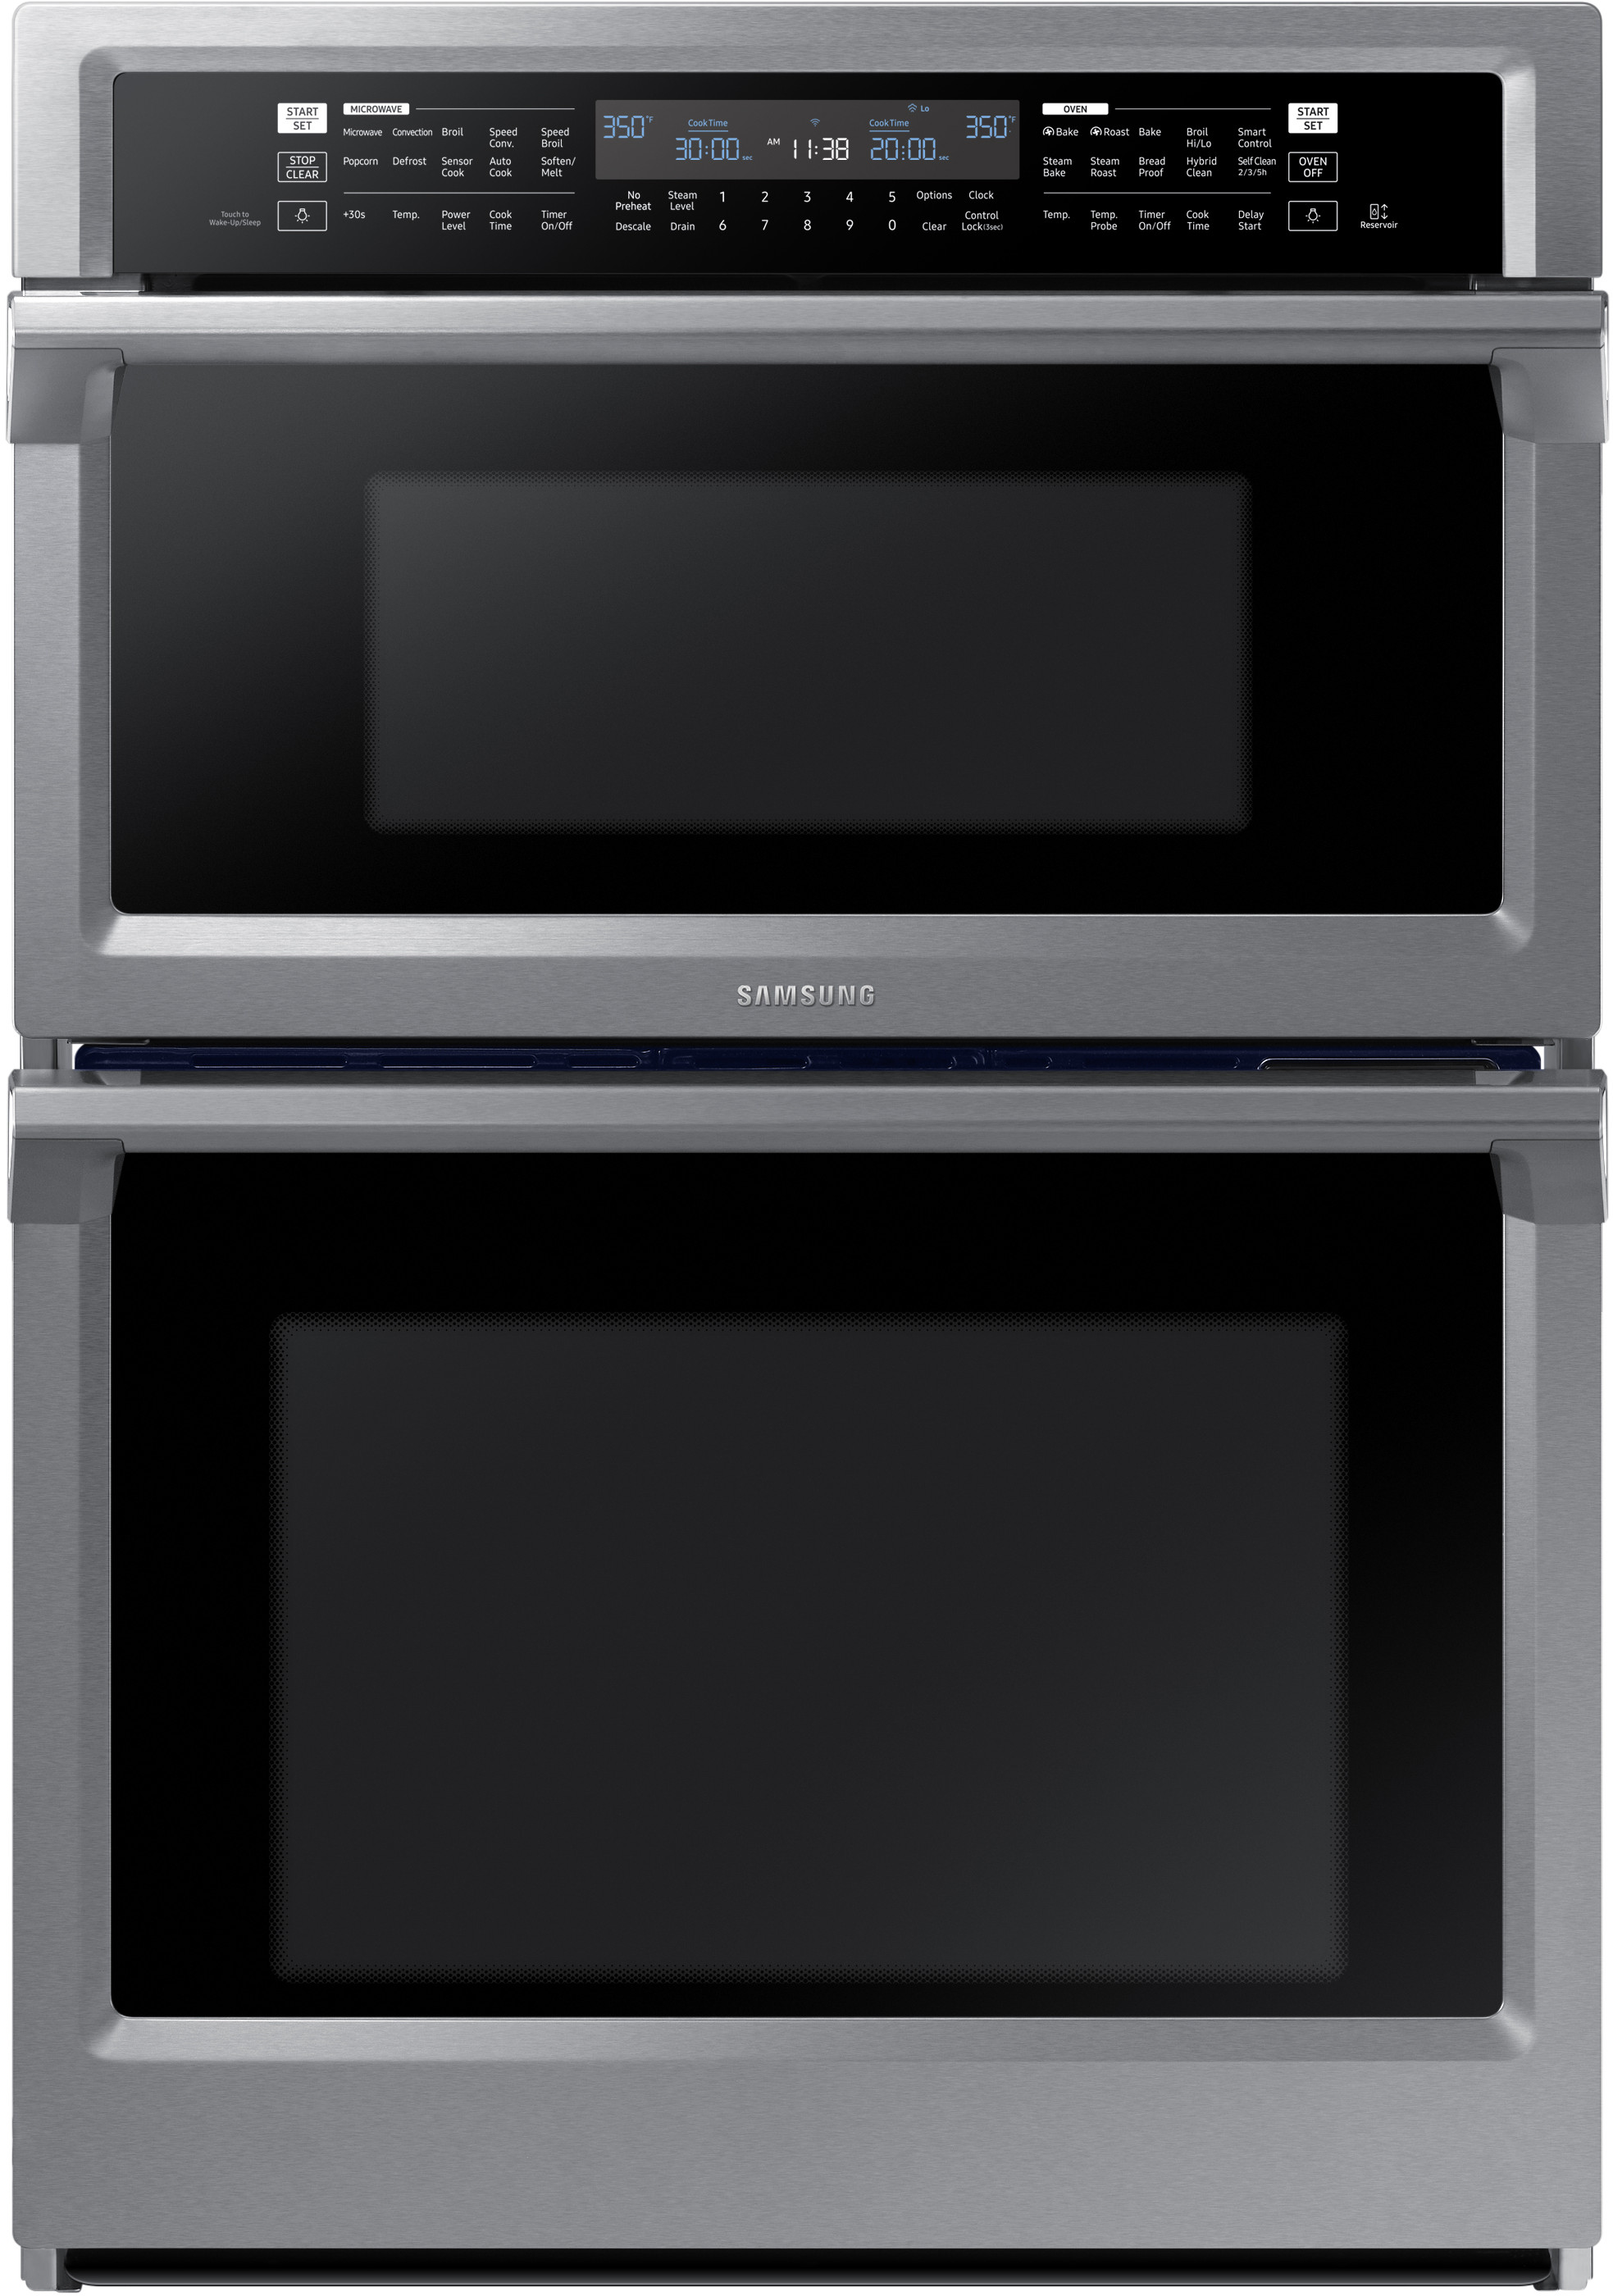 Samsung Nq70m6650ds 30 Inch Smart Combination Electric